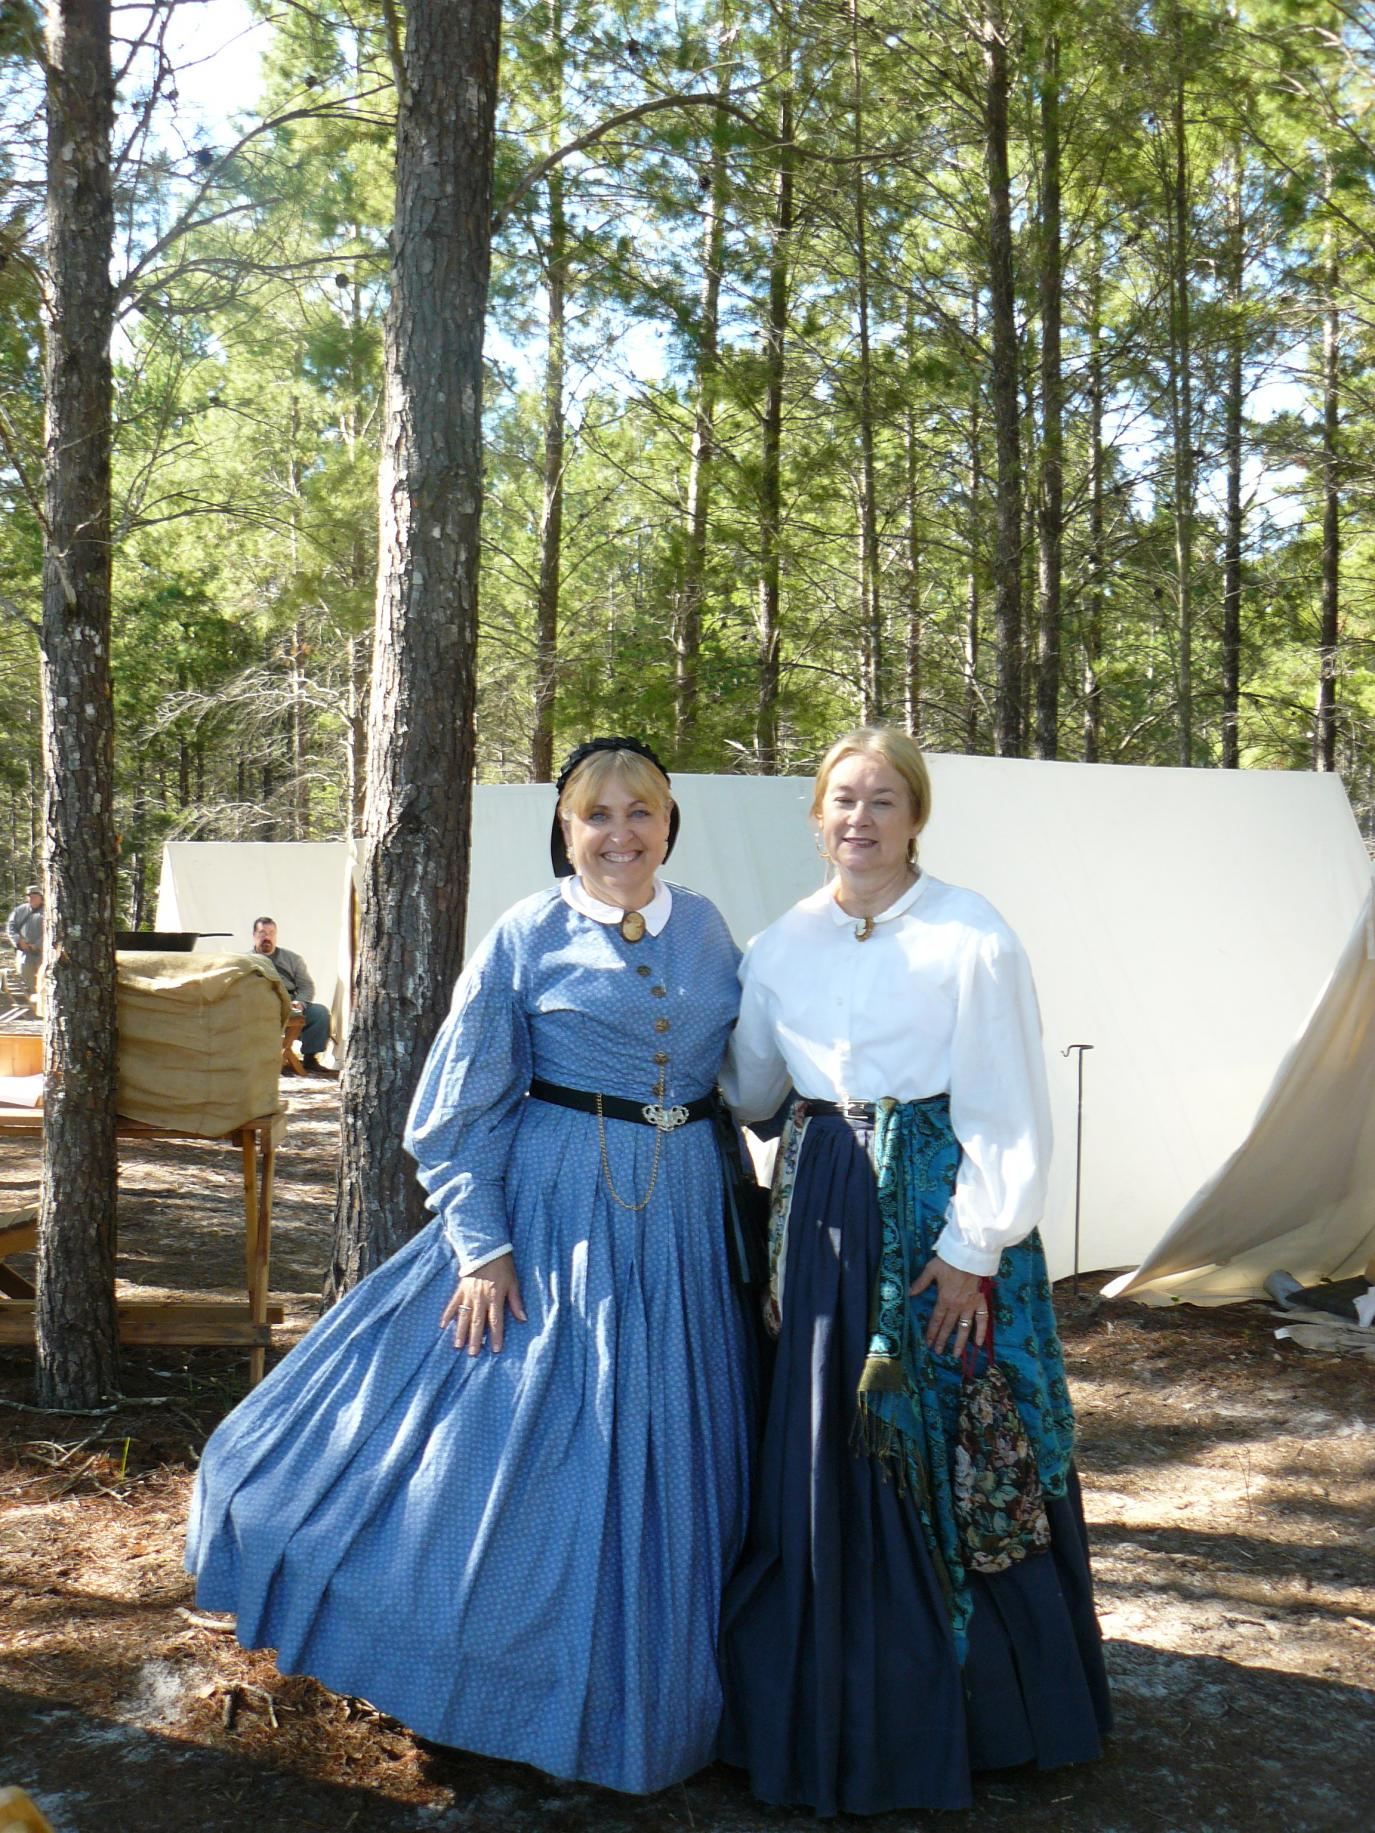 Two women wearing Dresses from the late 1800's with corsets on as well